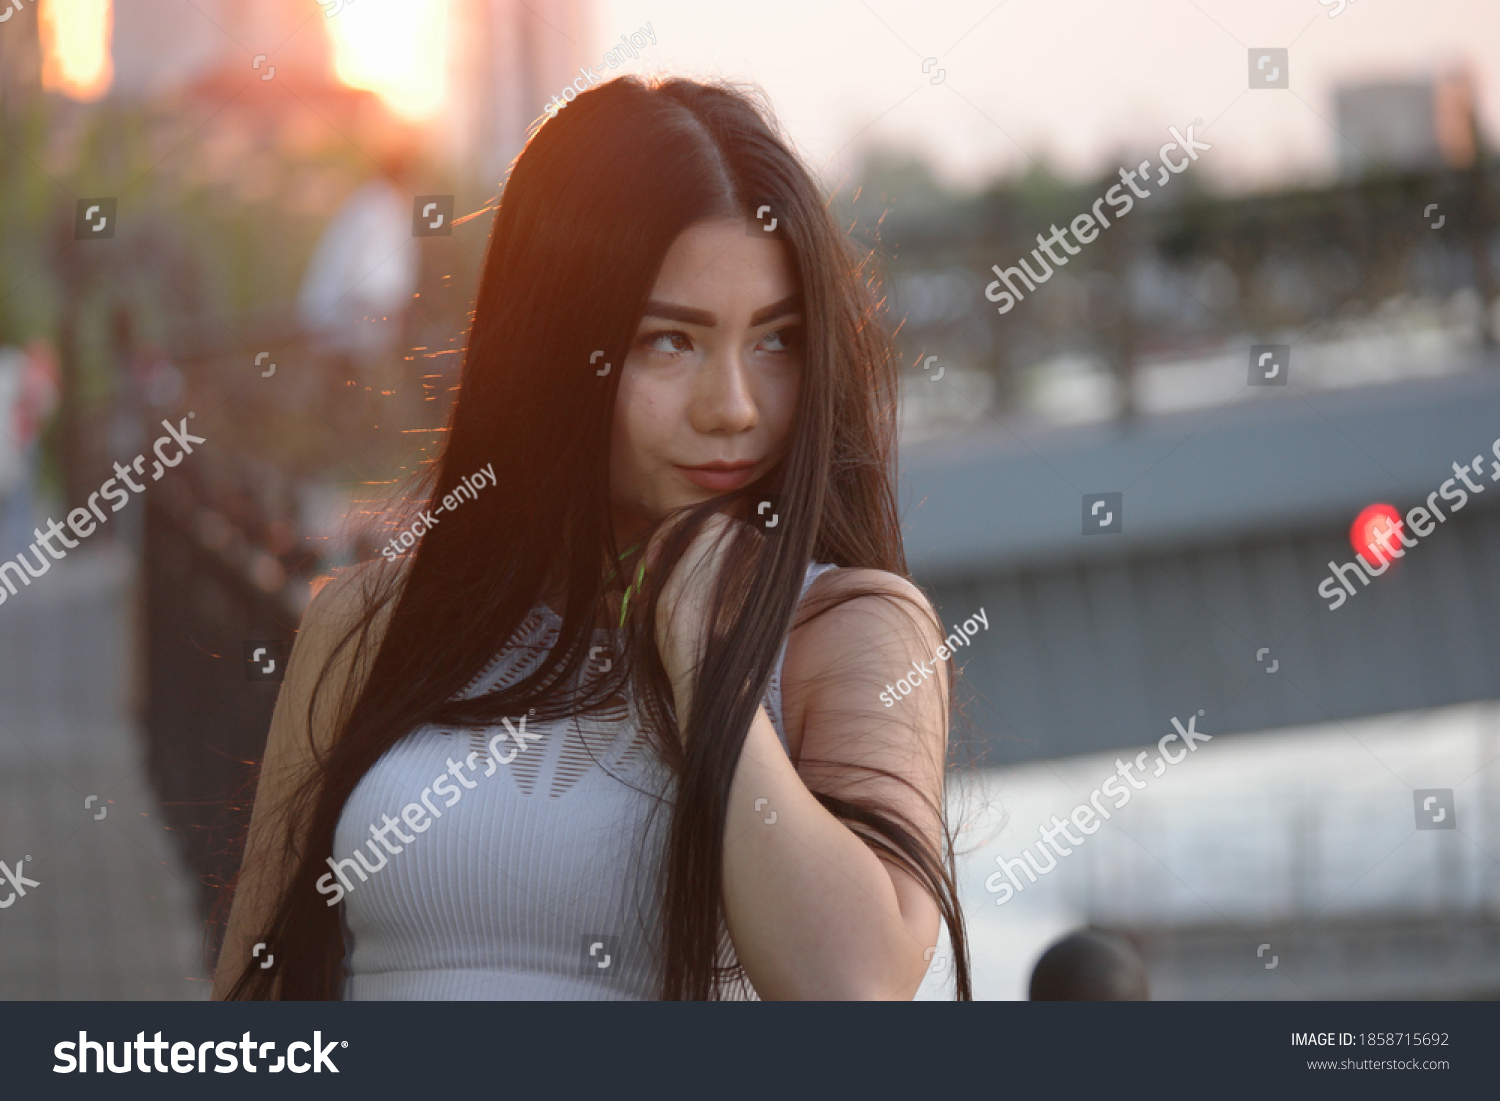 Melancholic asian girl posing in sunset time on embankment looking away and leaning her chin on her hand, copyspace. Lovesick sweetheart in depression.